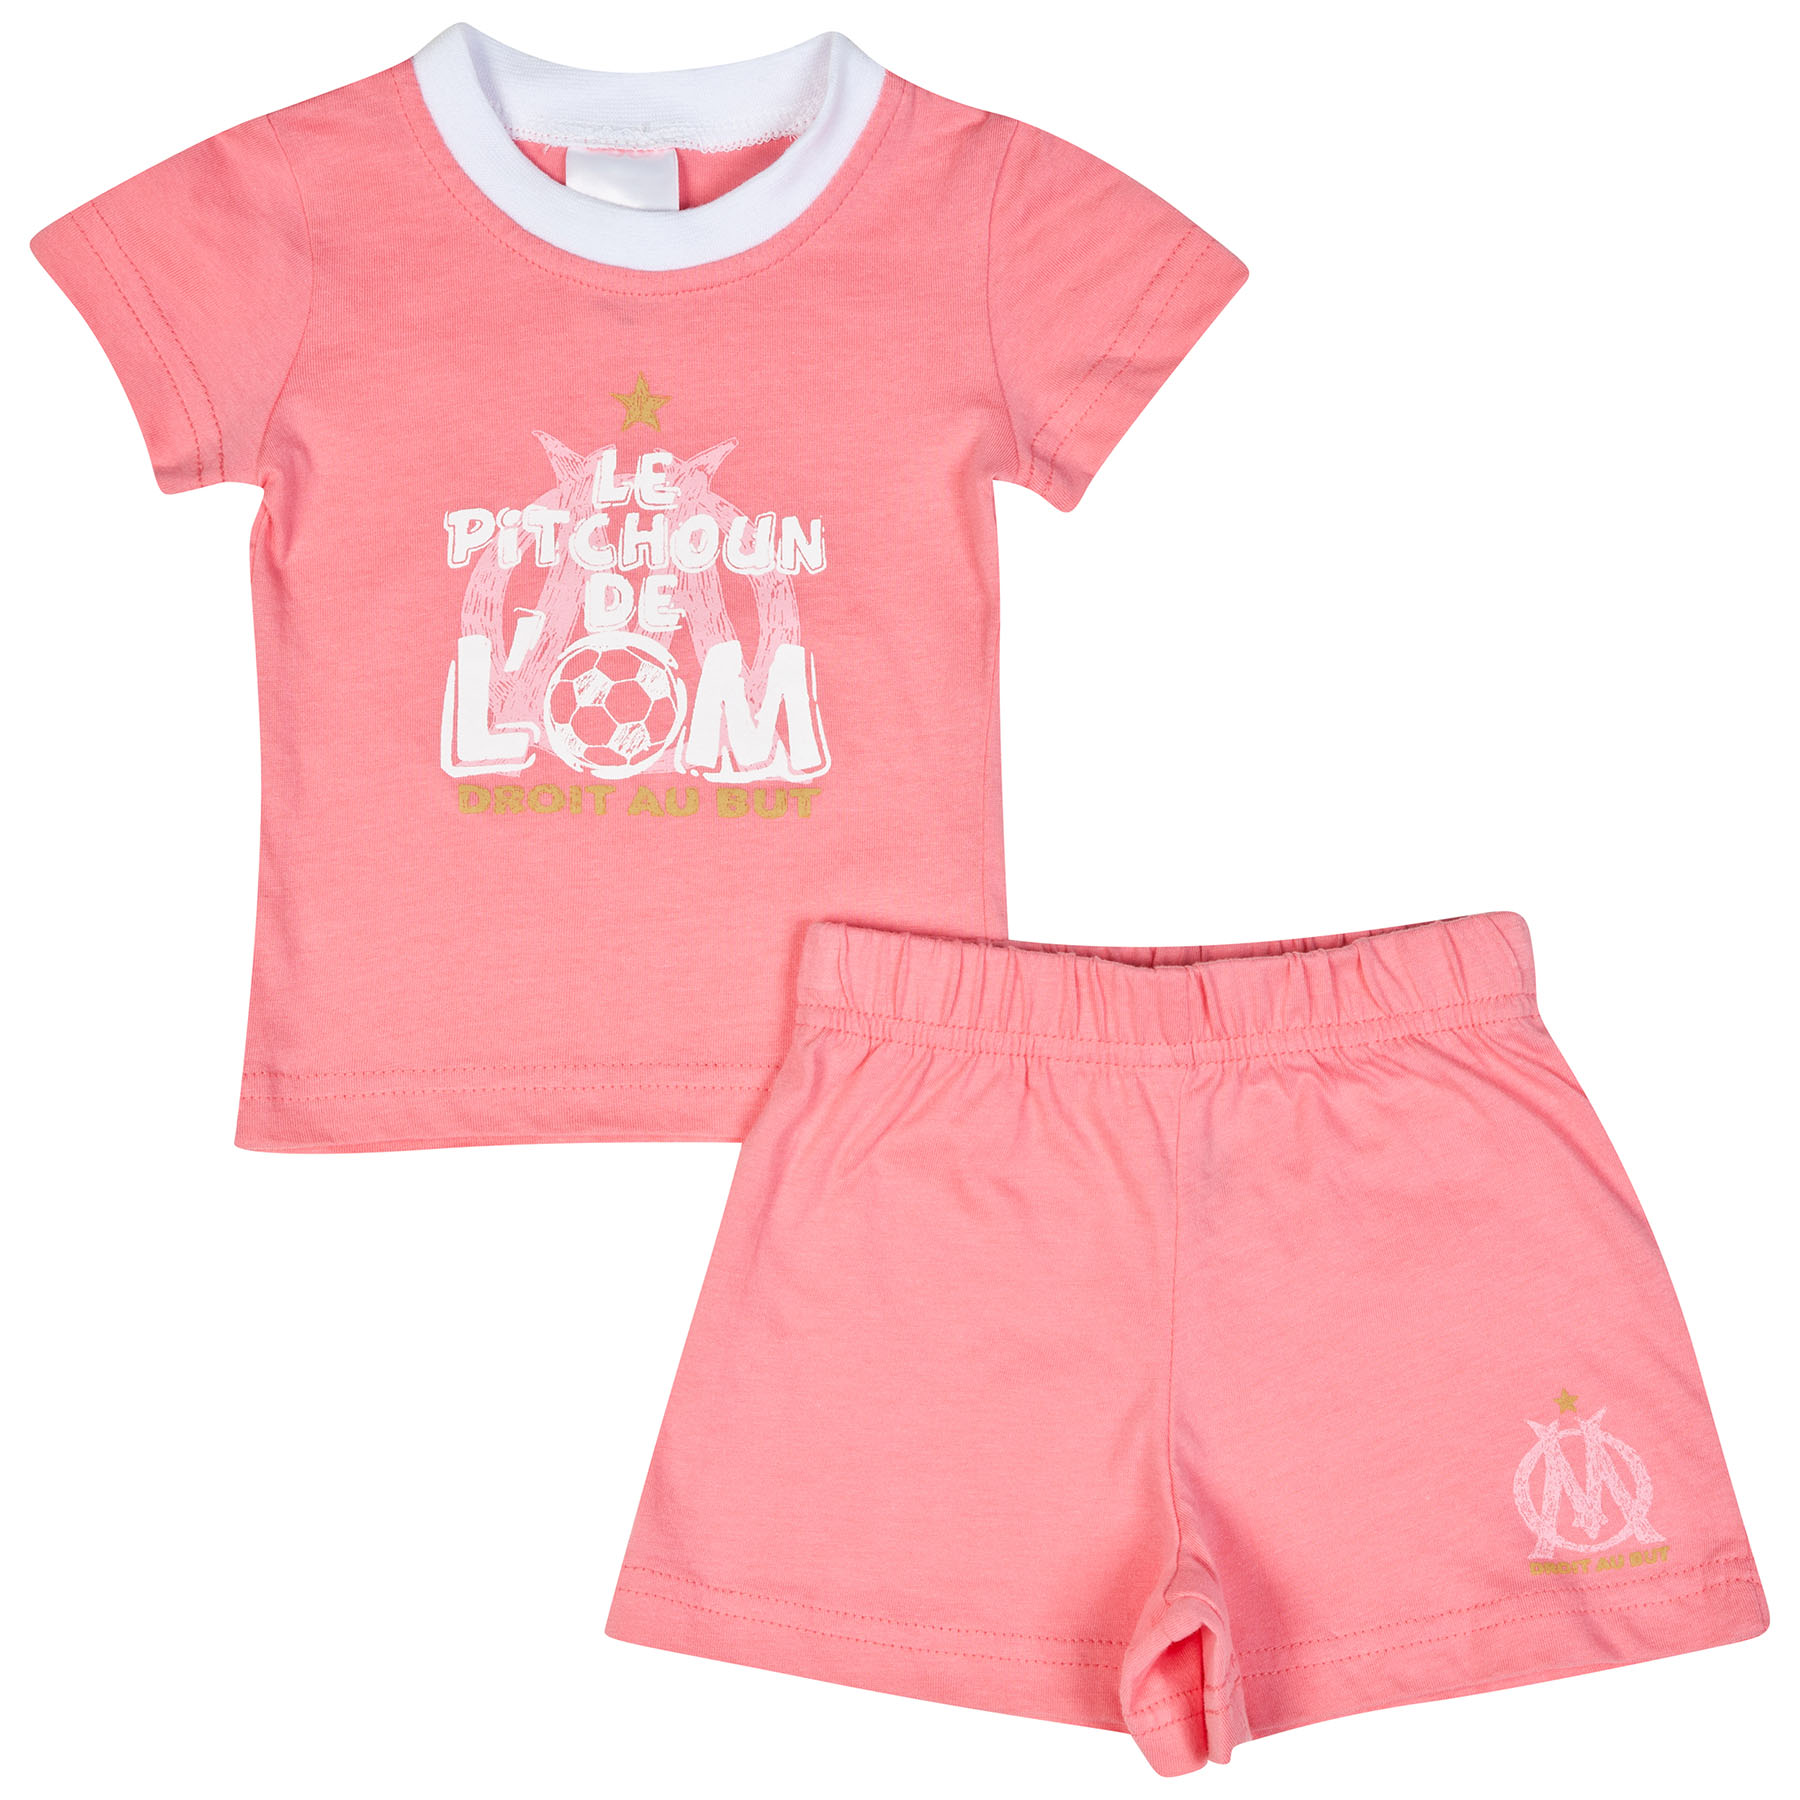 Olympique de Marseille T-Shirt and Short Set - Pink - Baby Girls